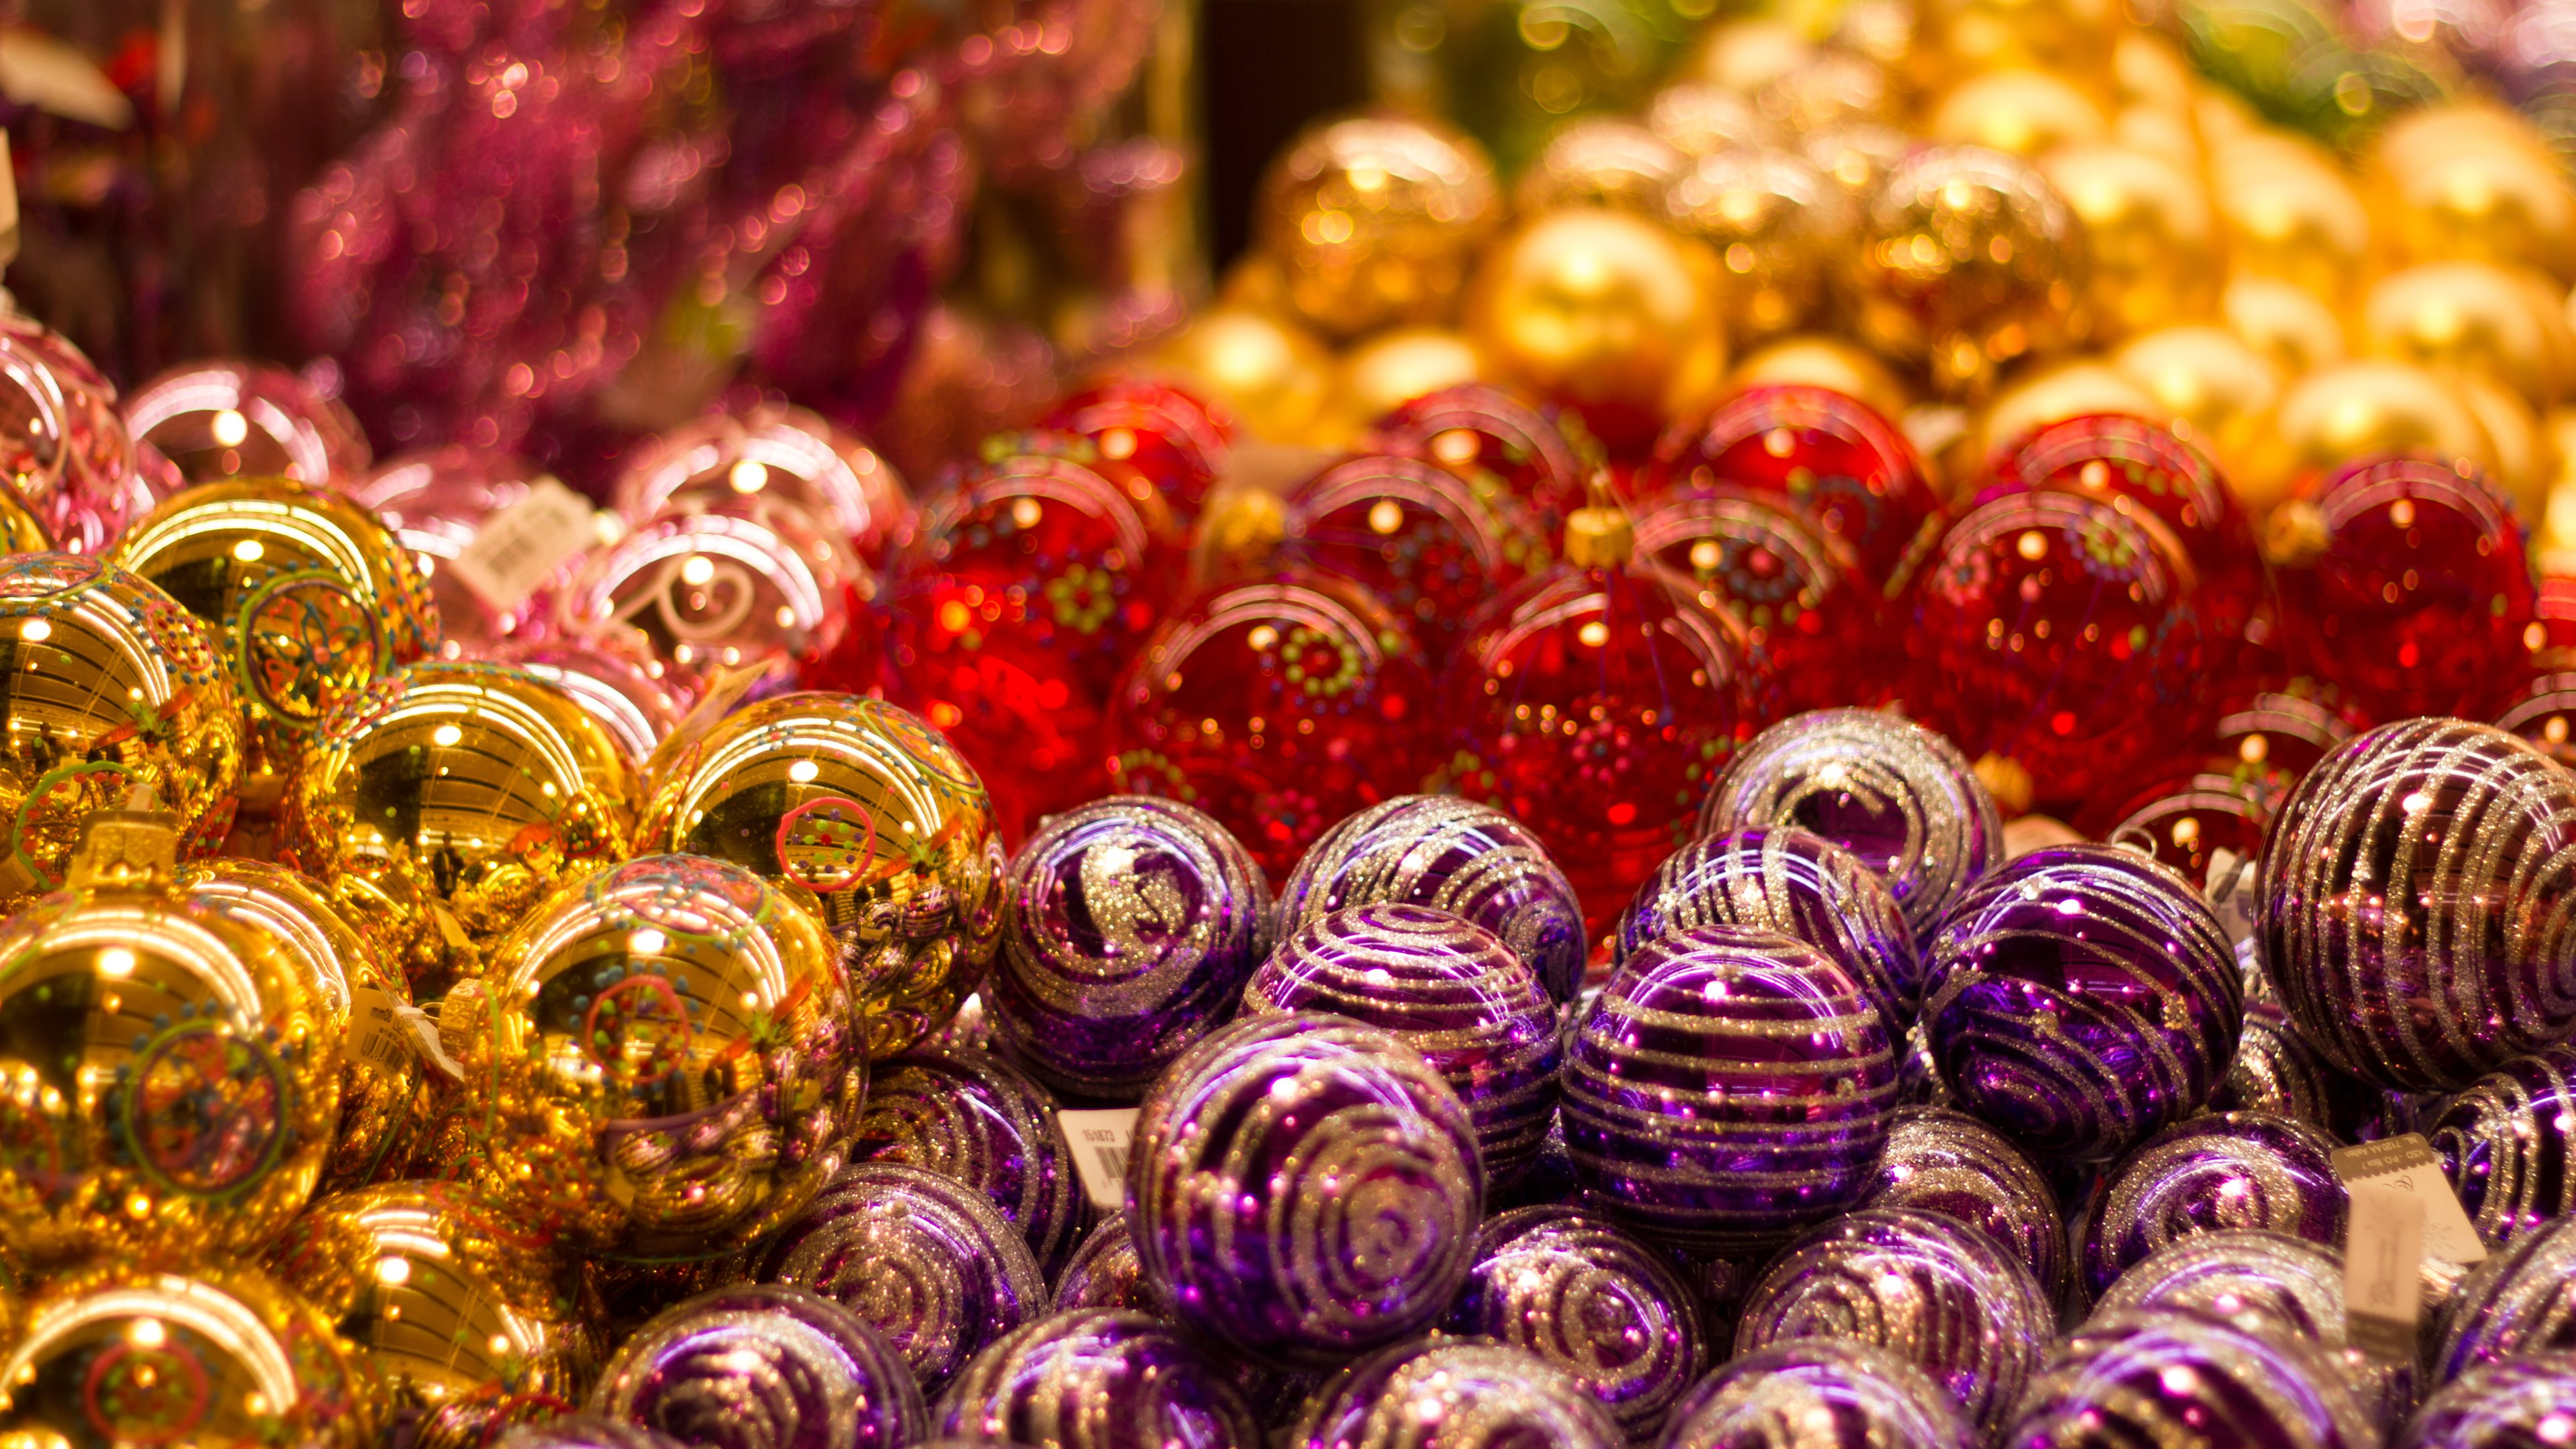 Christmas Balls | HD Wallpapers · 4K